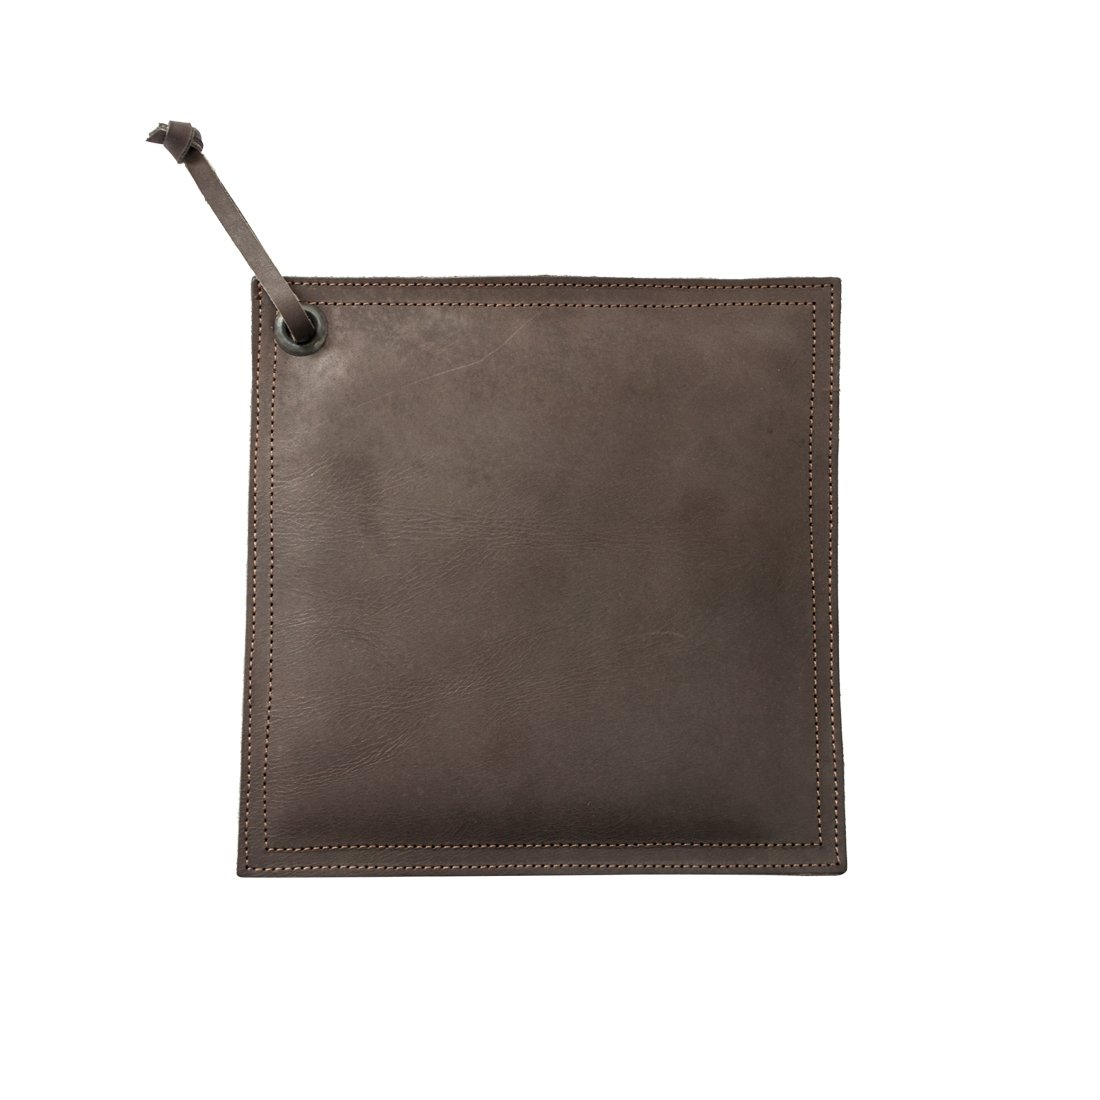 Leather Hot Pot Pad (Potholder), Double Layered, Double Stitched and Handmade by Hide & Drink :: Espresso